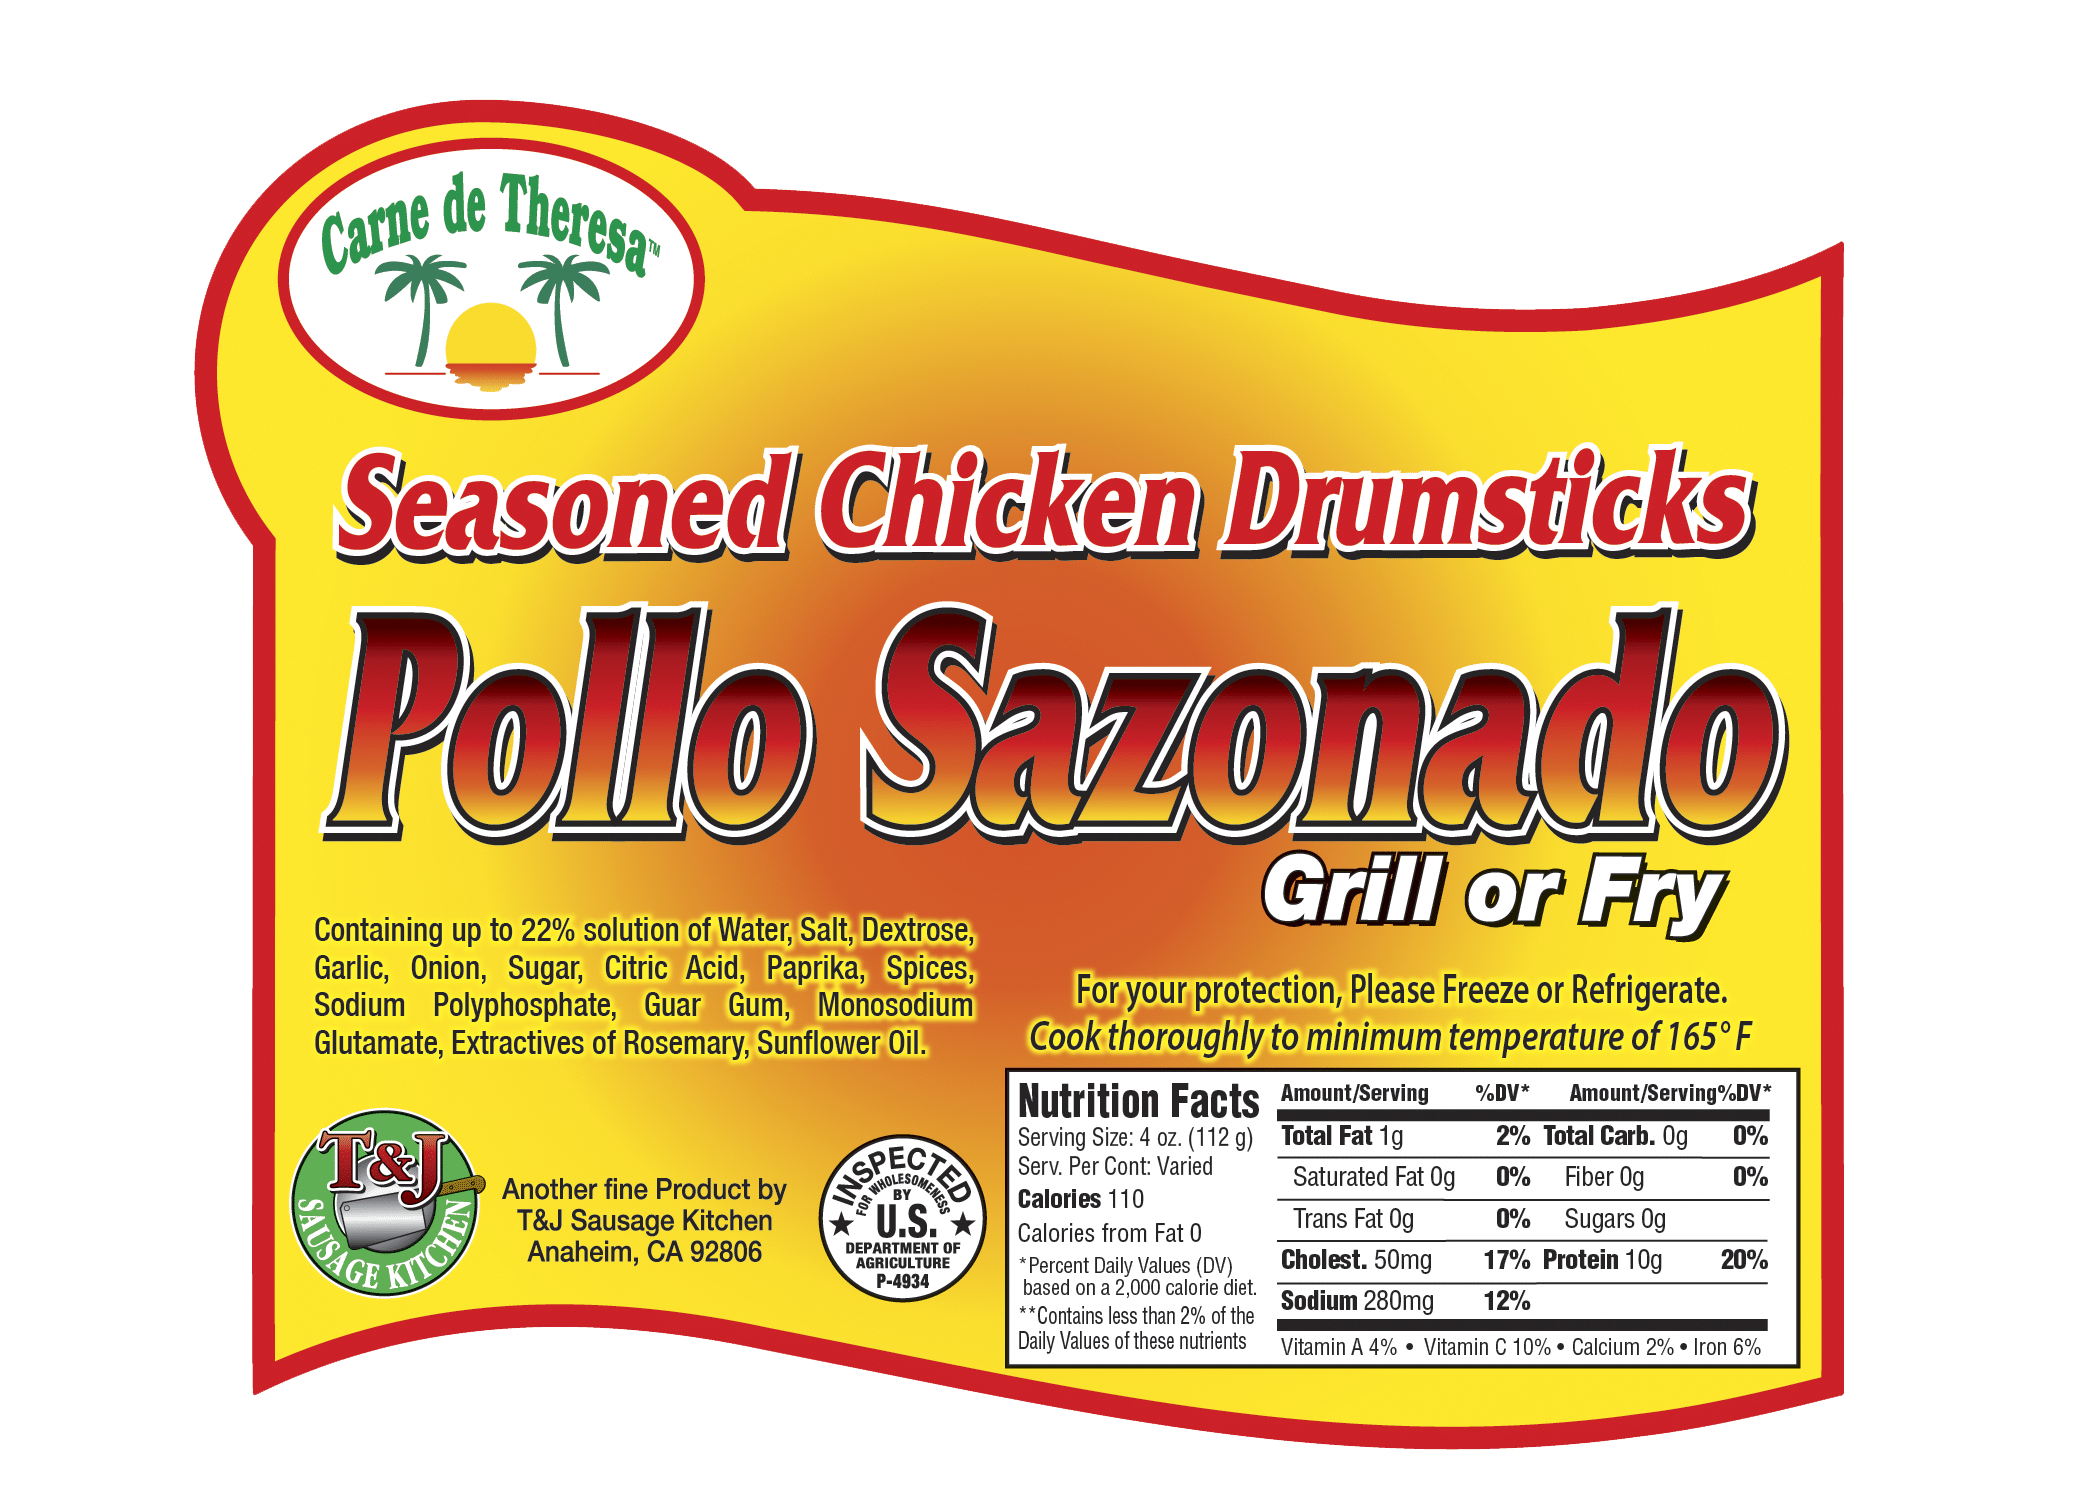 CDT Pollo Sazonado Drumsticks